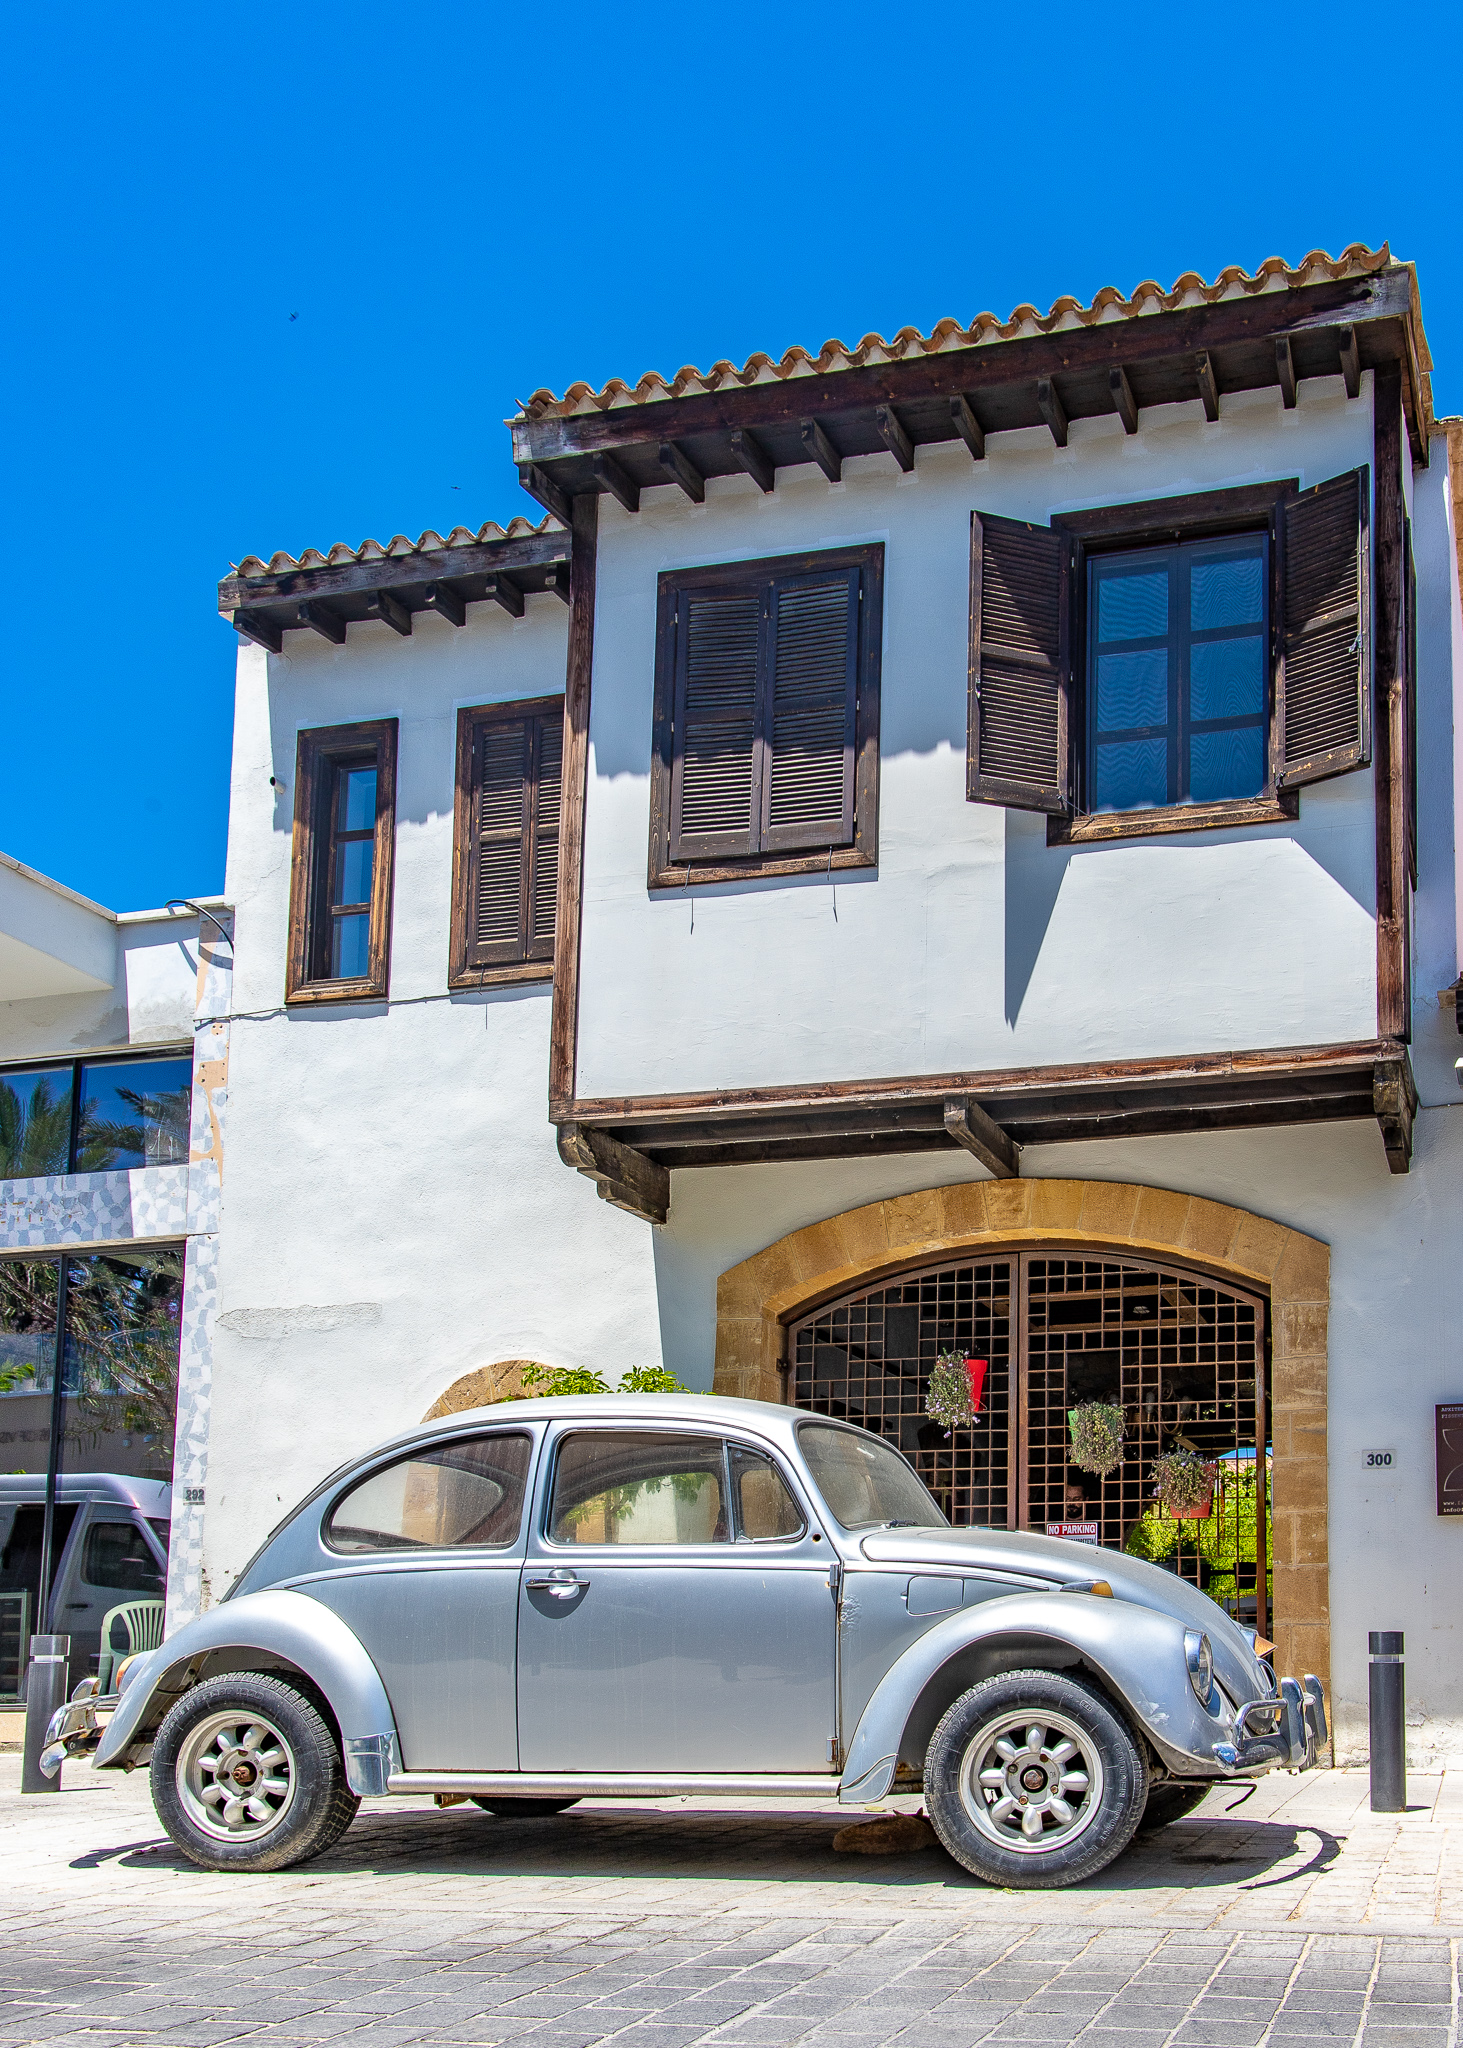 Funky buildings and cars - who would've thought such a thing existed in Cyprus